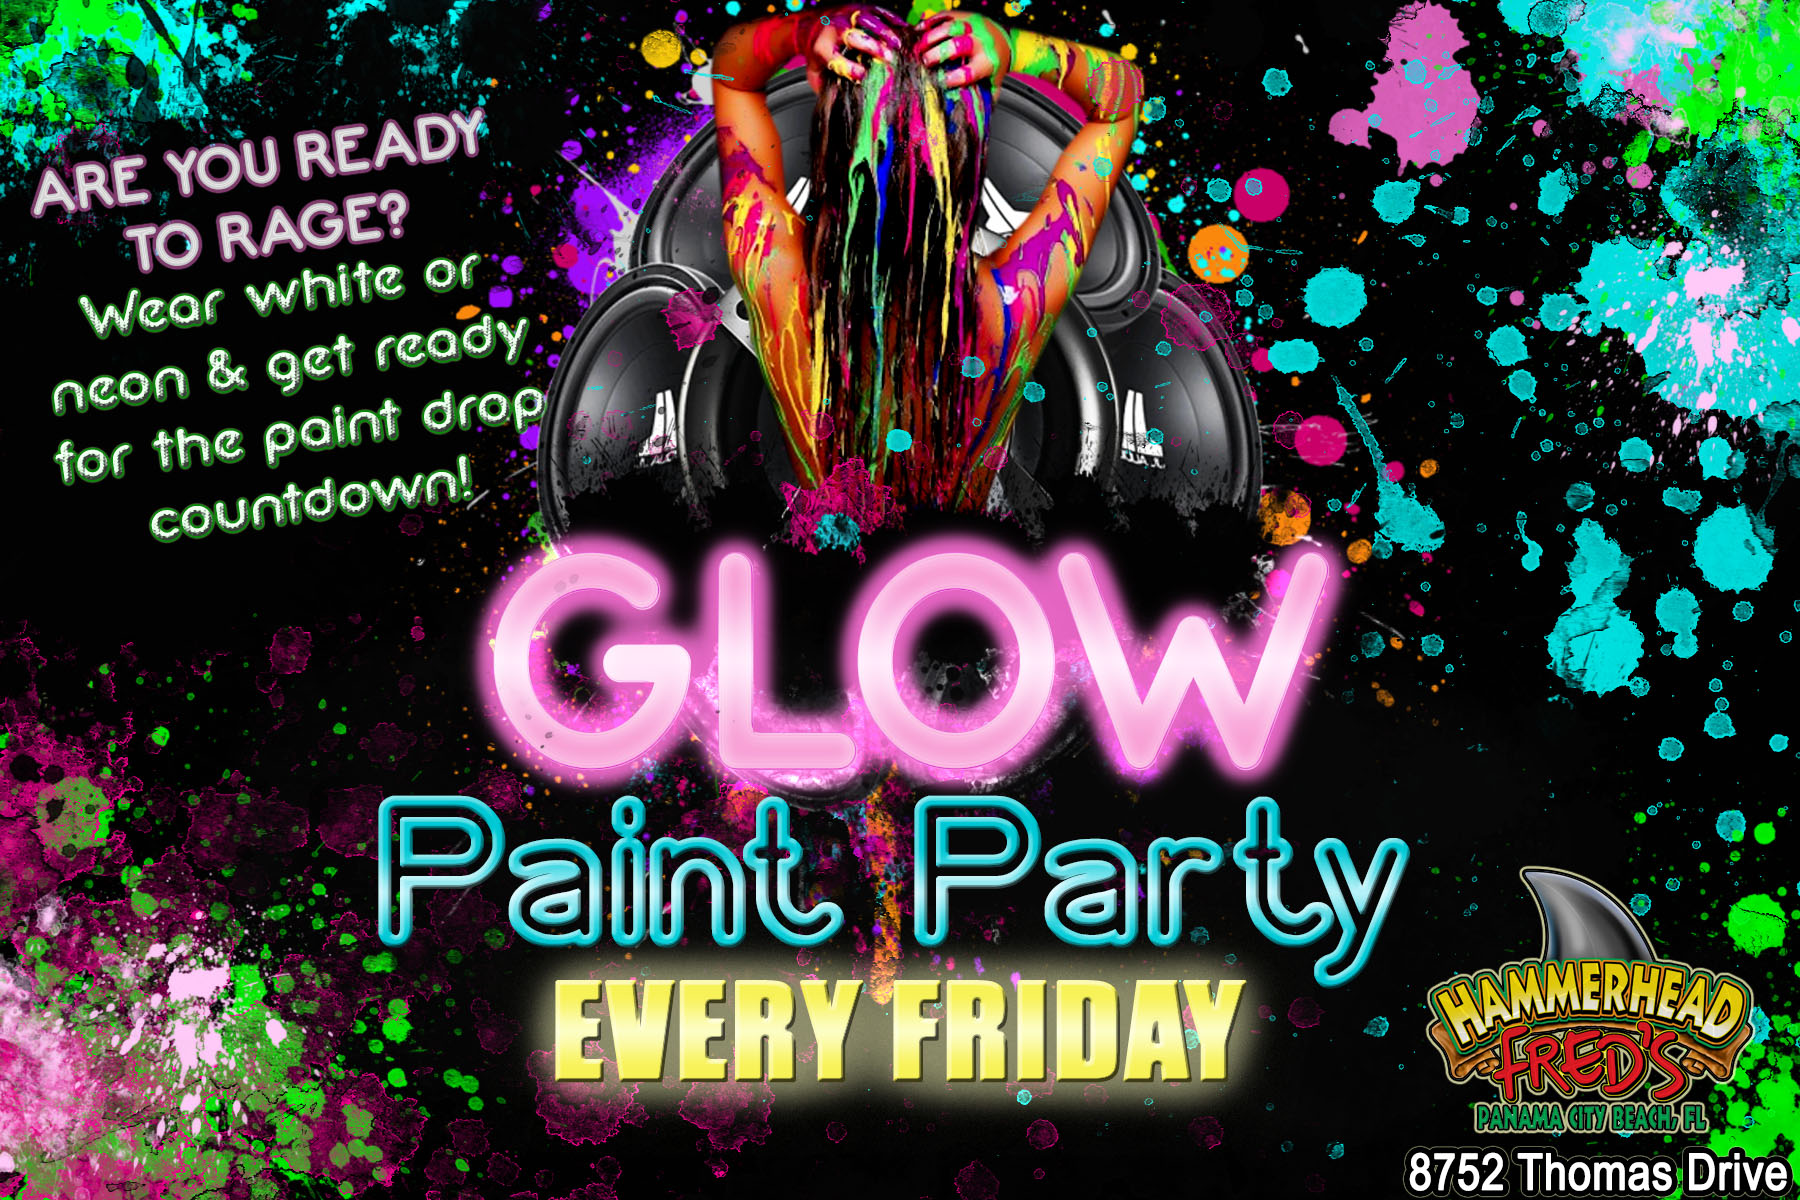 Ultimate glow paint party spring break 2017 tickets for Neon paint party 2017